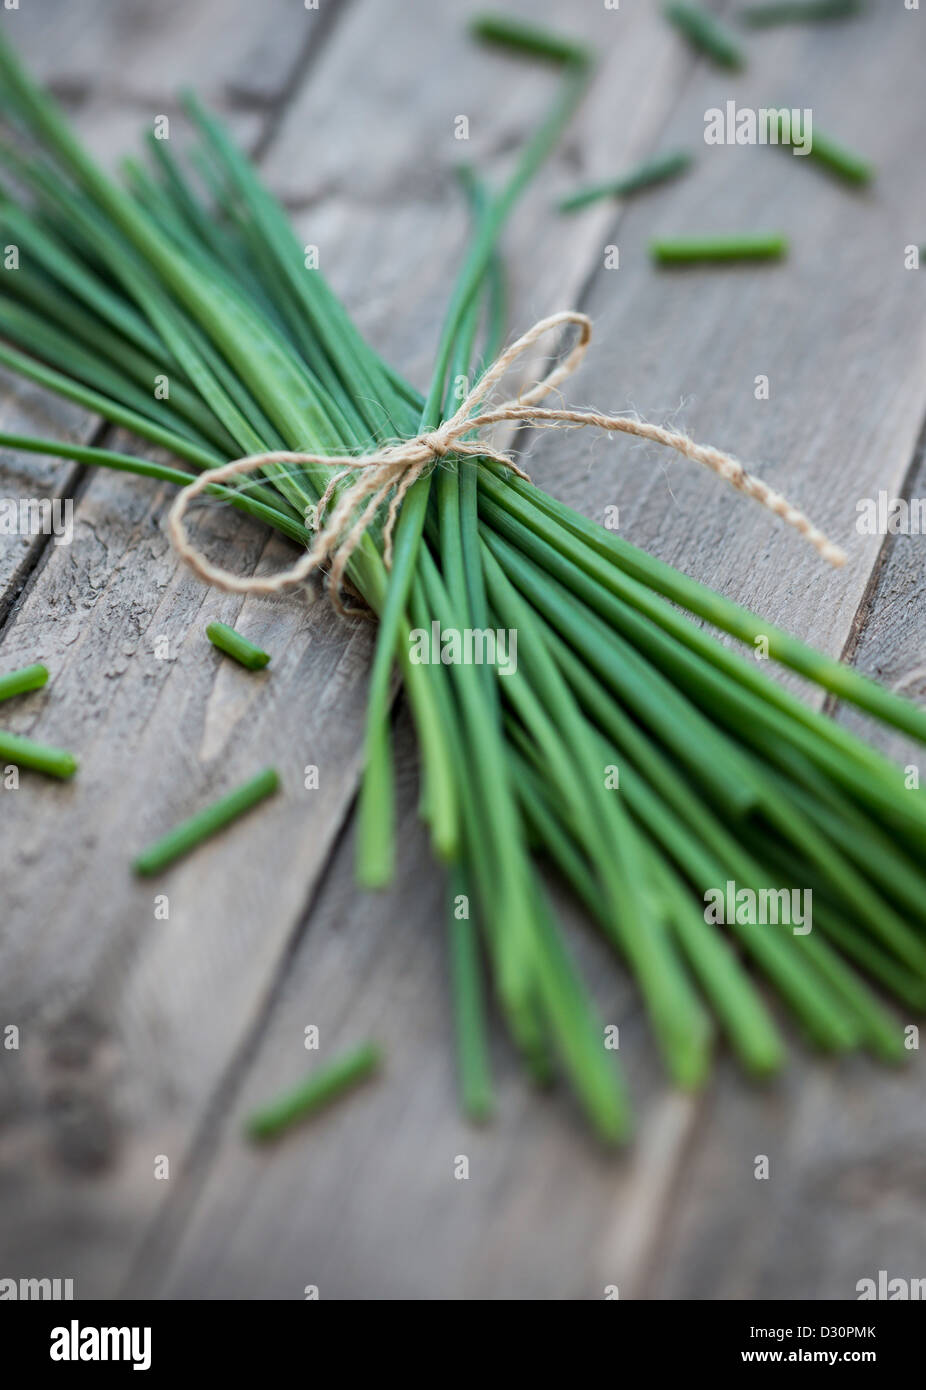 Chives. - Stock Image